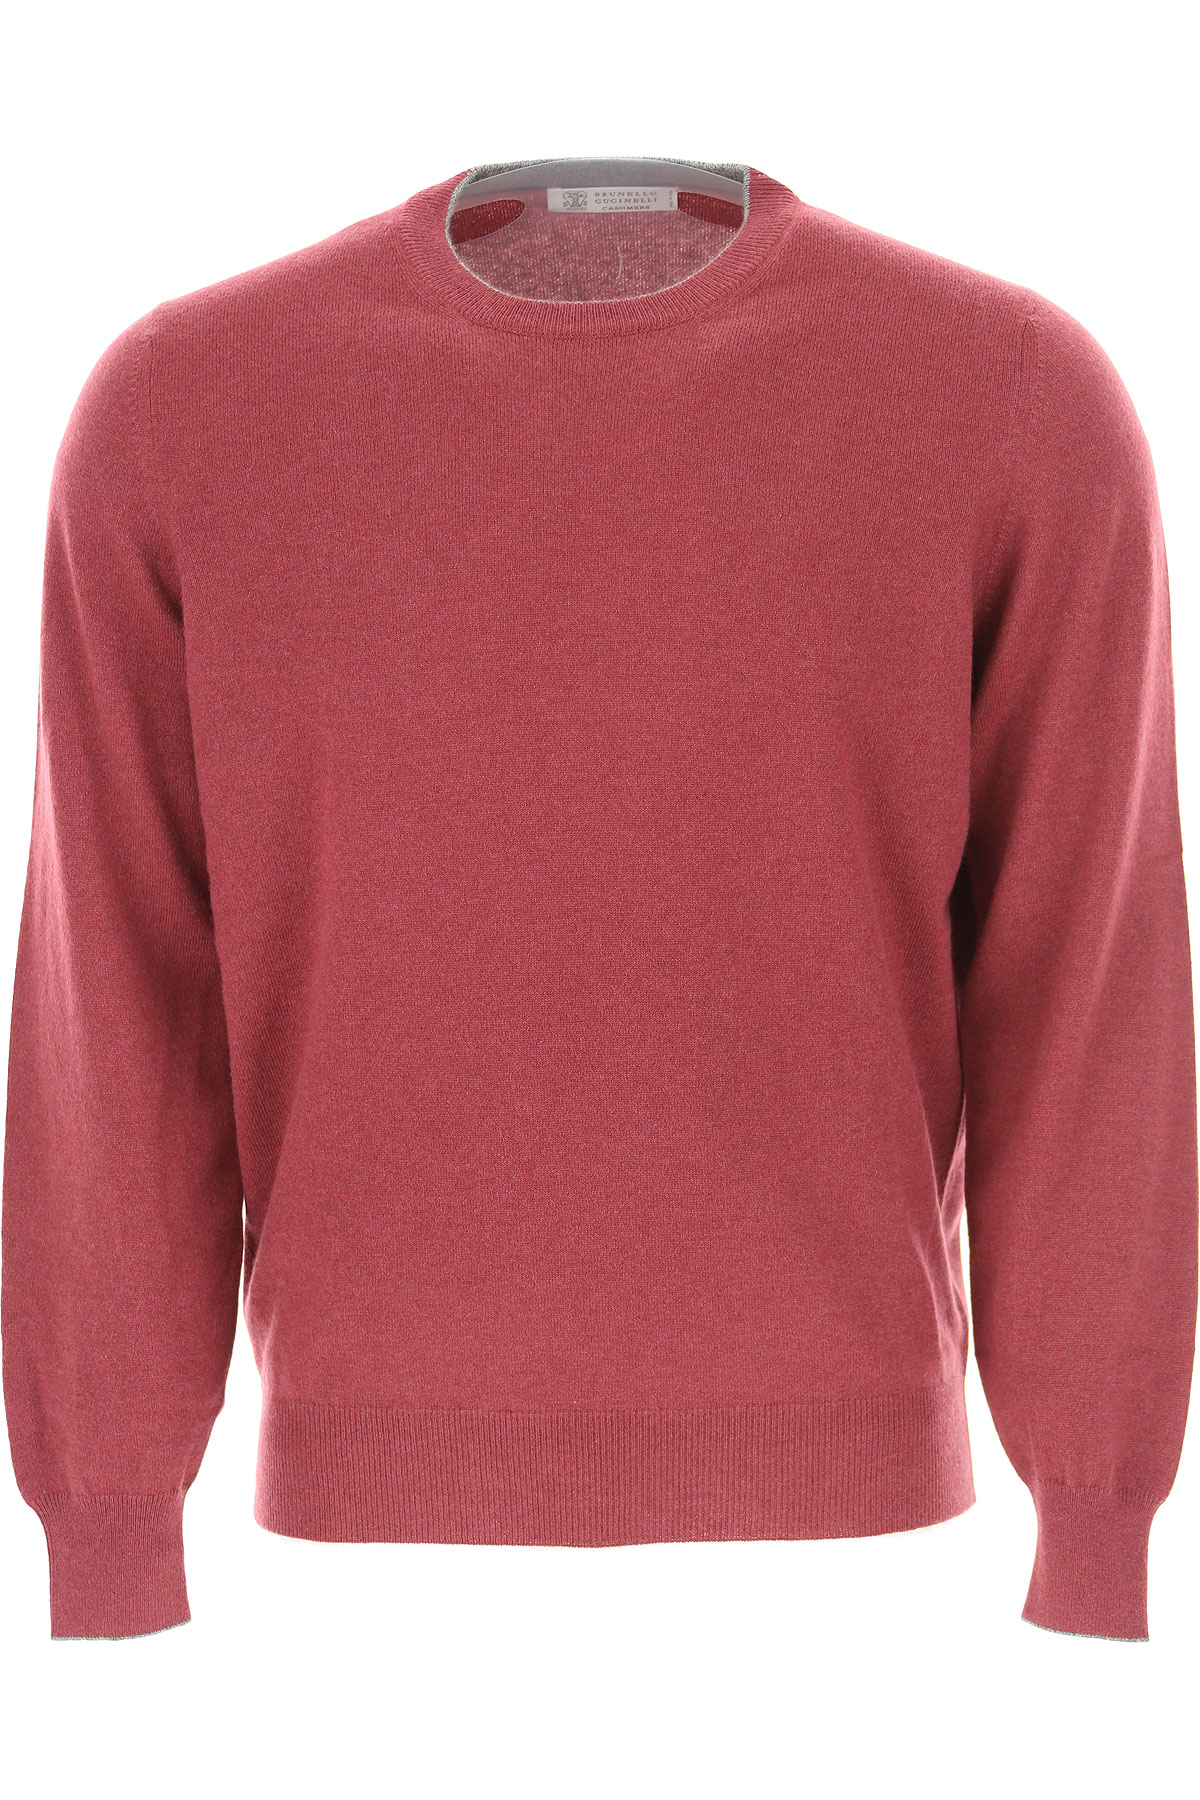 Brunello Cucinelli Sweater for Men Jumper On Sale in Outlet, Bordeaux, Cashemere, 2019, L M